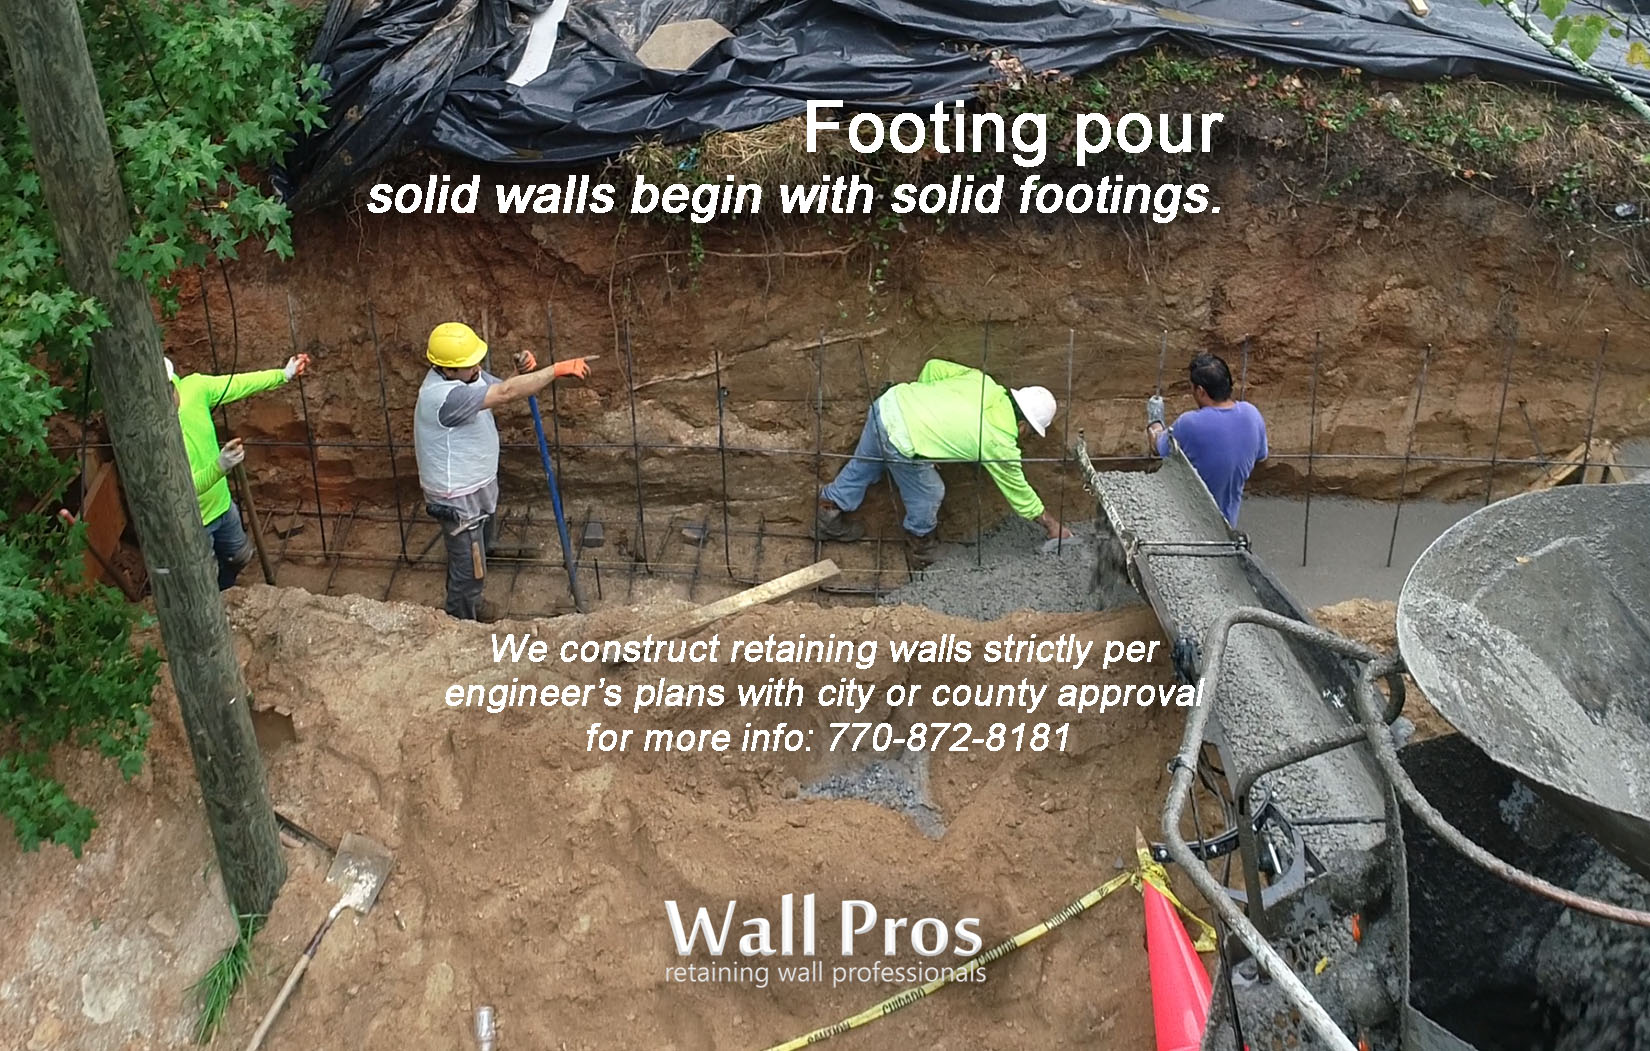 pouring a footing for a retaining wall